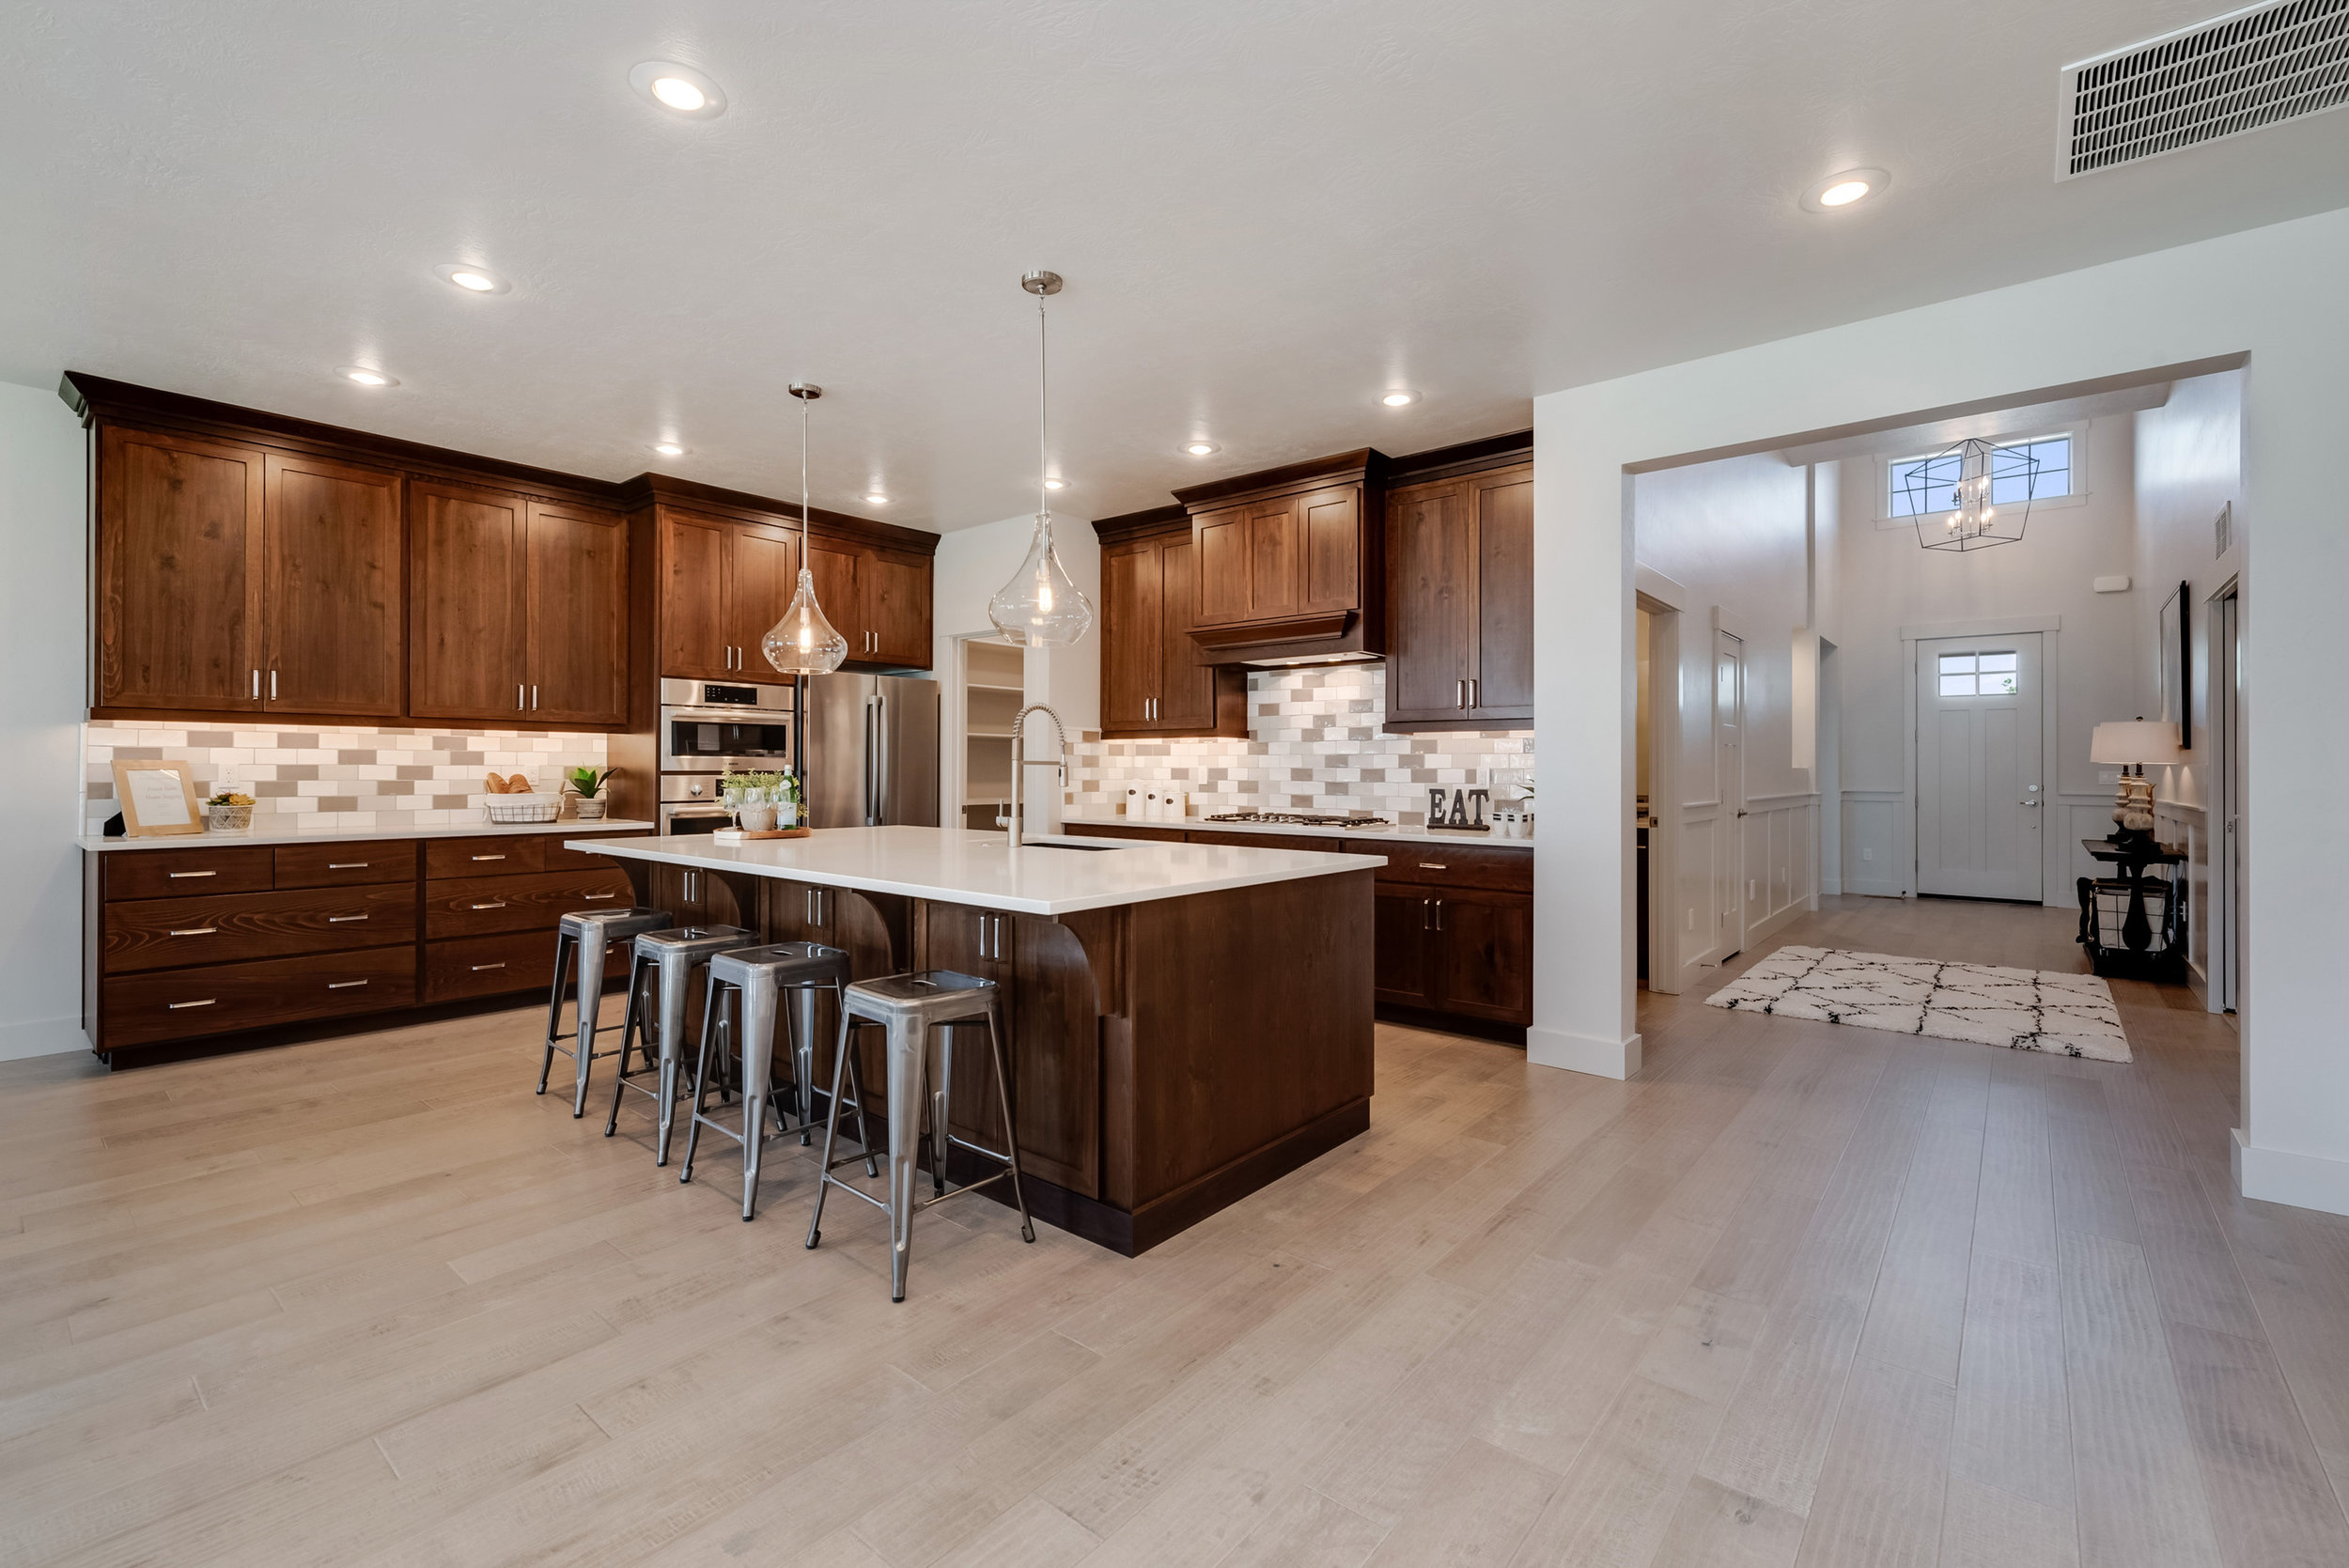 10-Kitchen and Entry.jpg